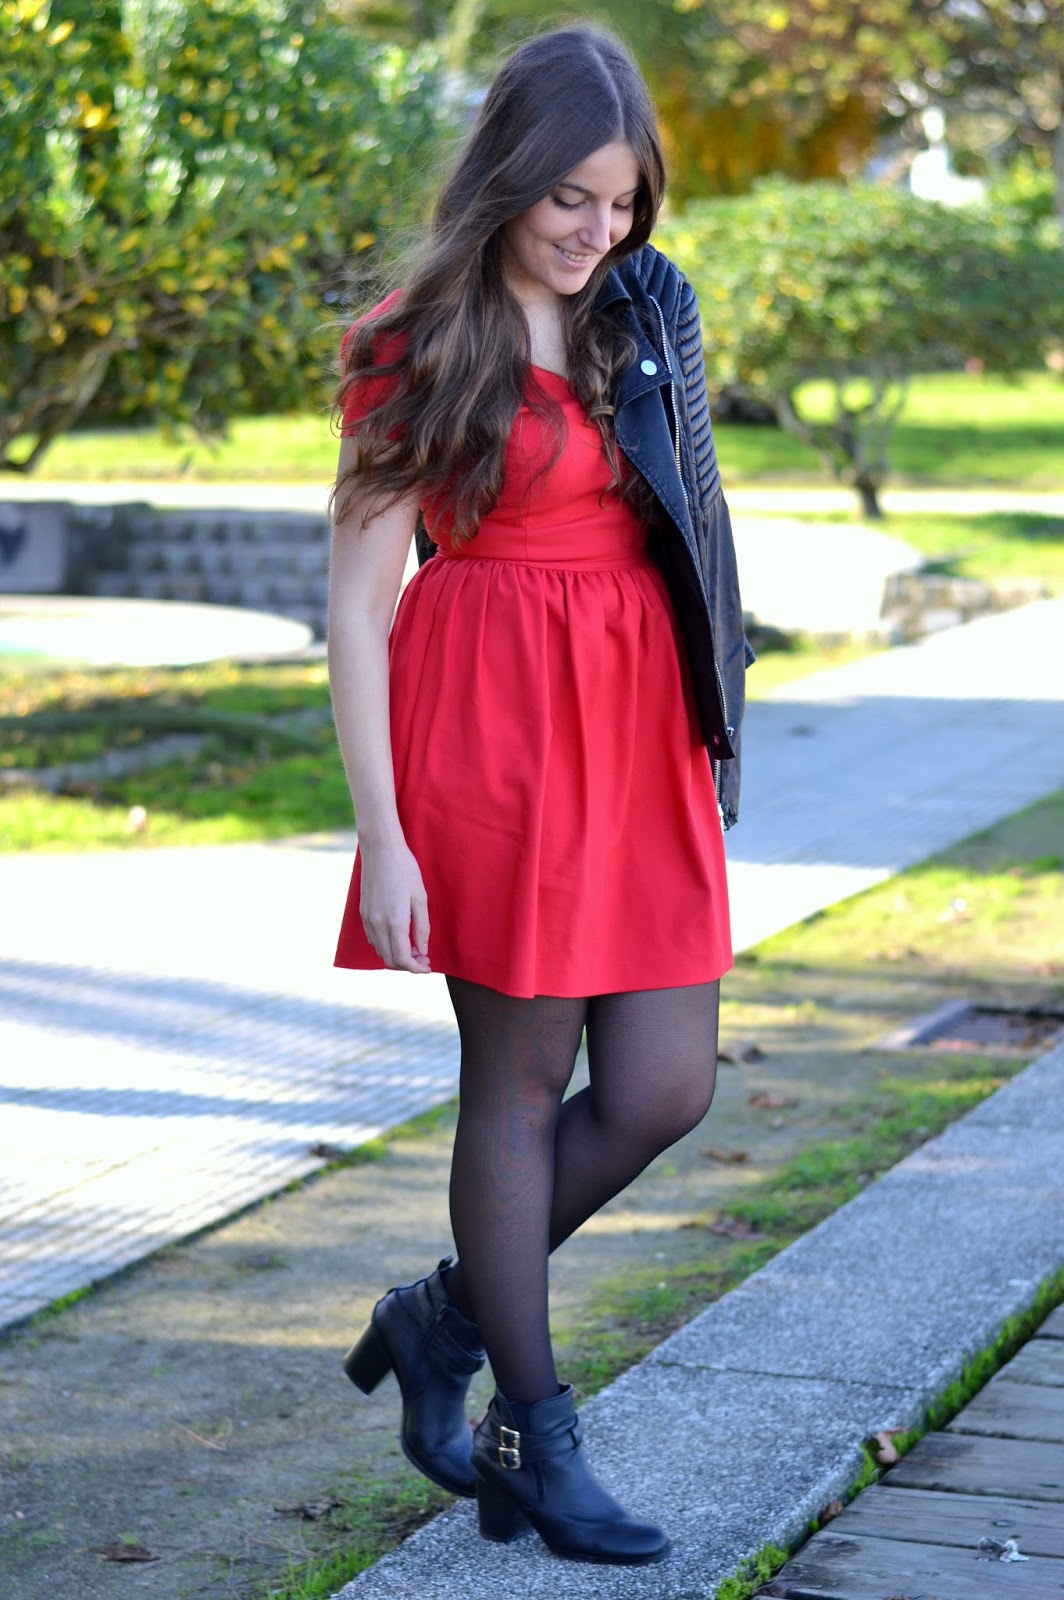 http://me-andmybag.blogspot.com.es/2014/12/red-dress.html